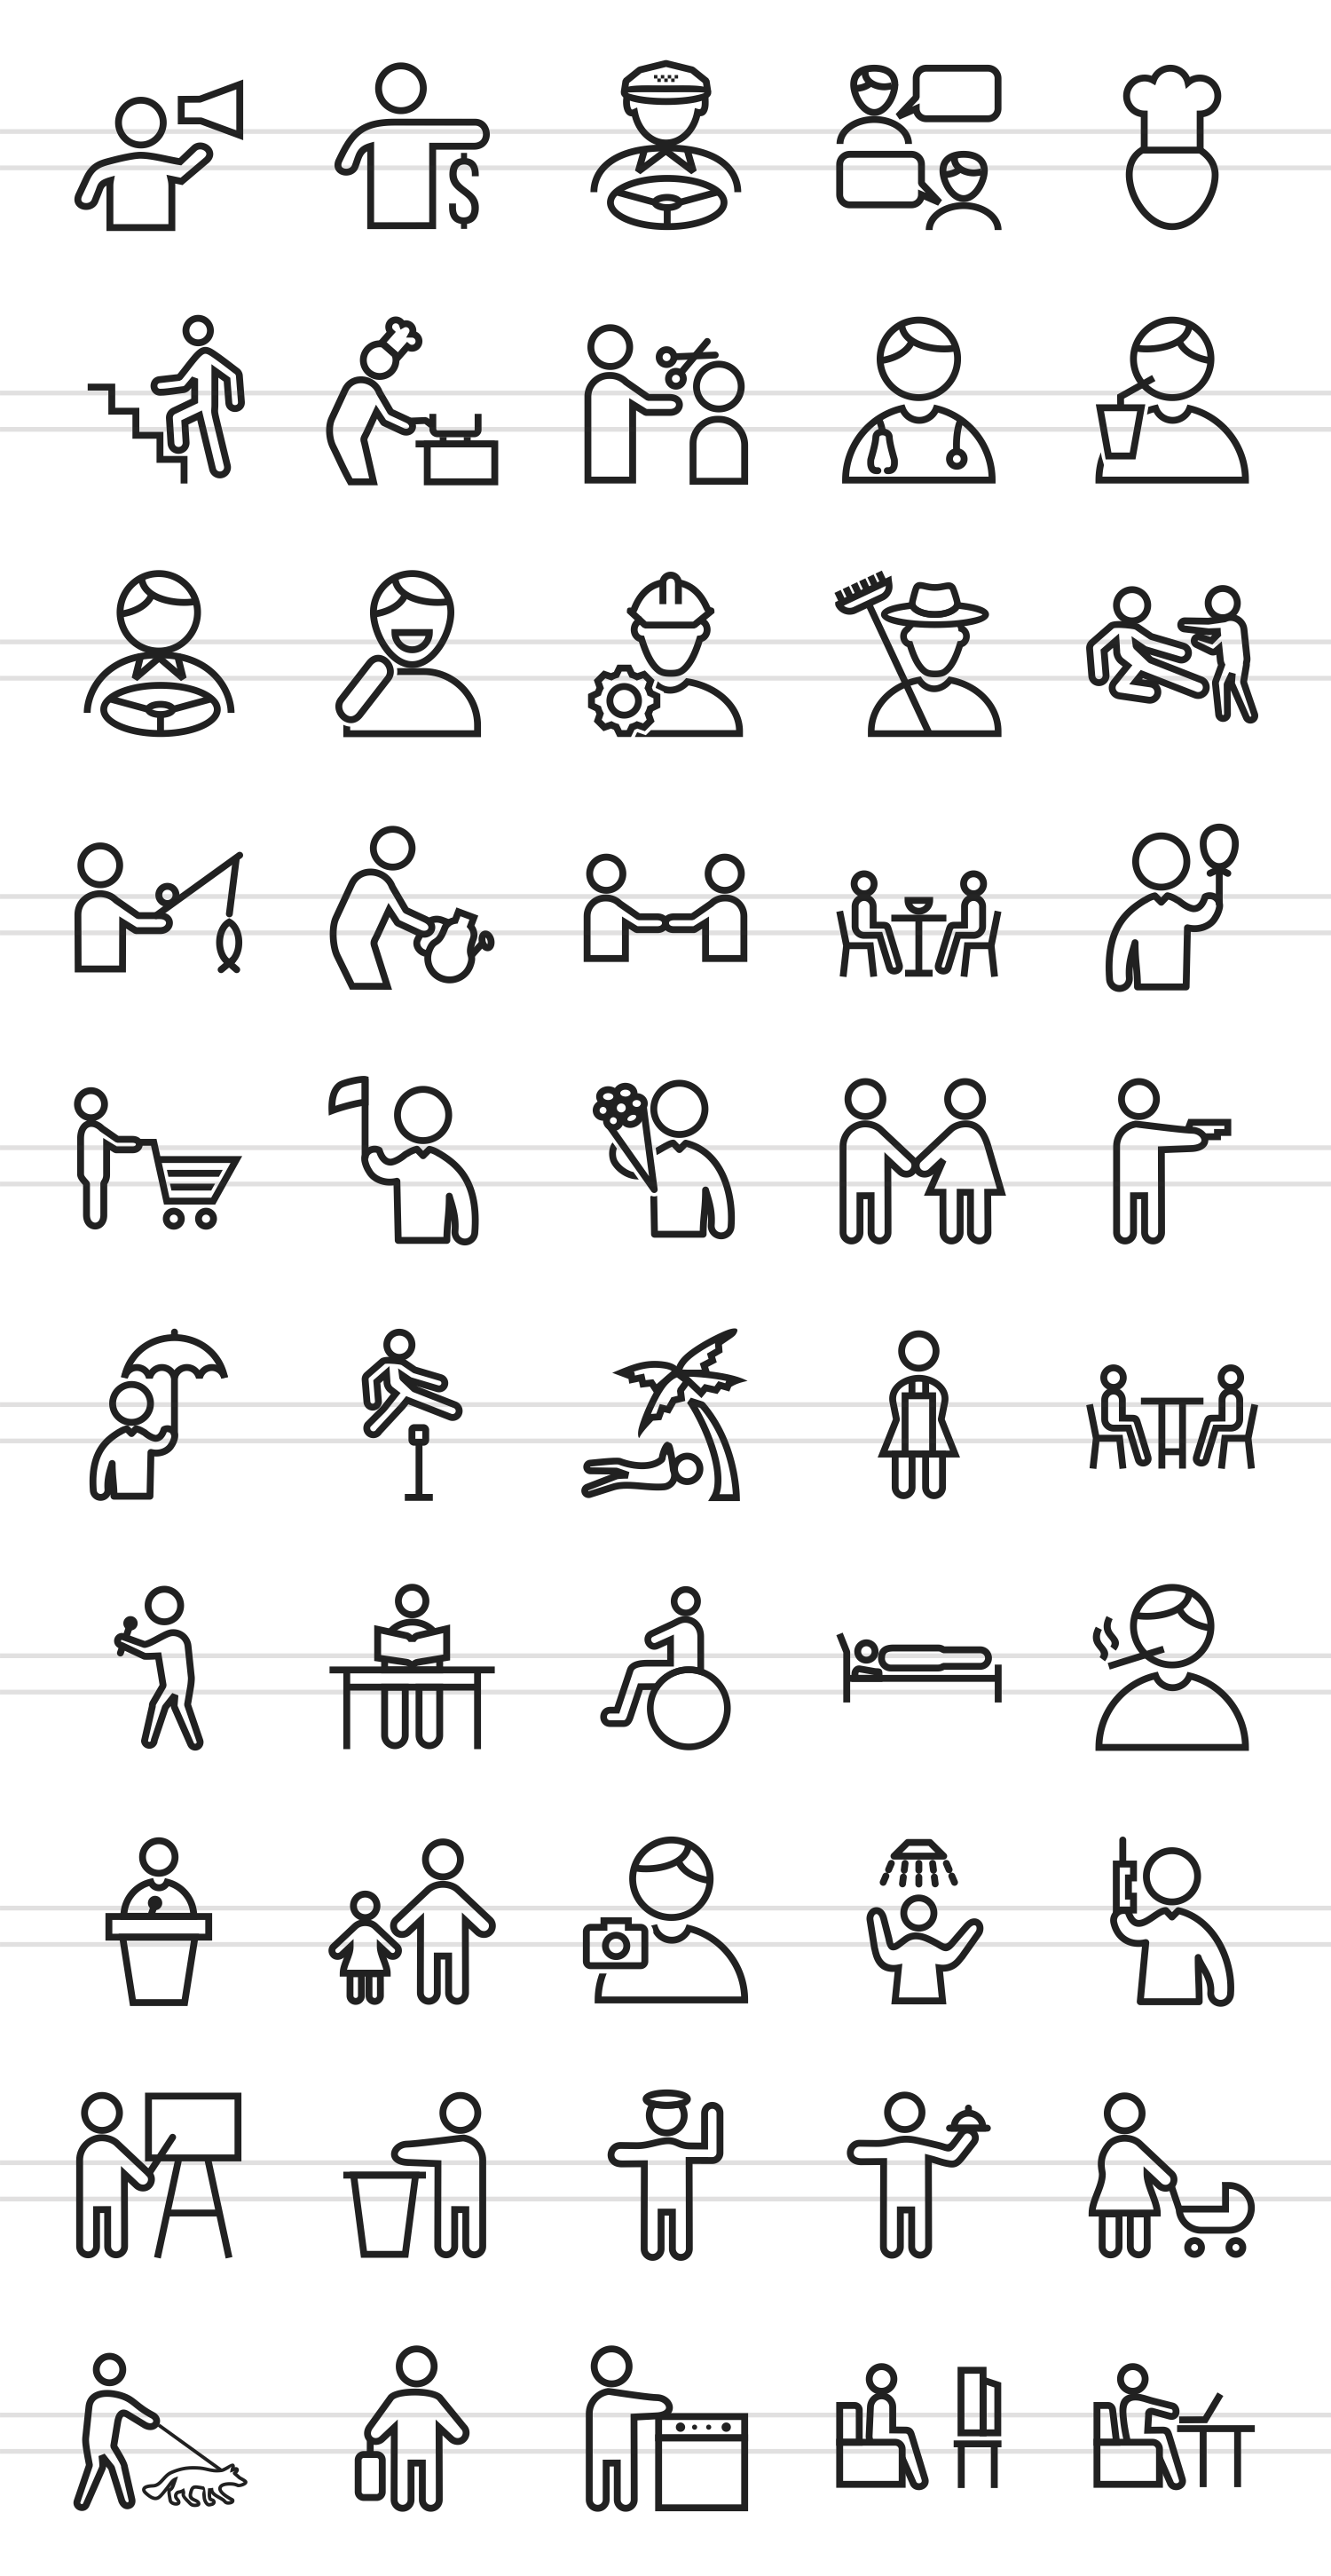 50 Activities Line Icons example image 2